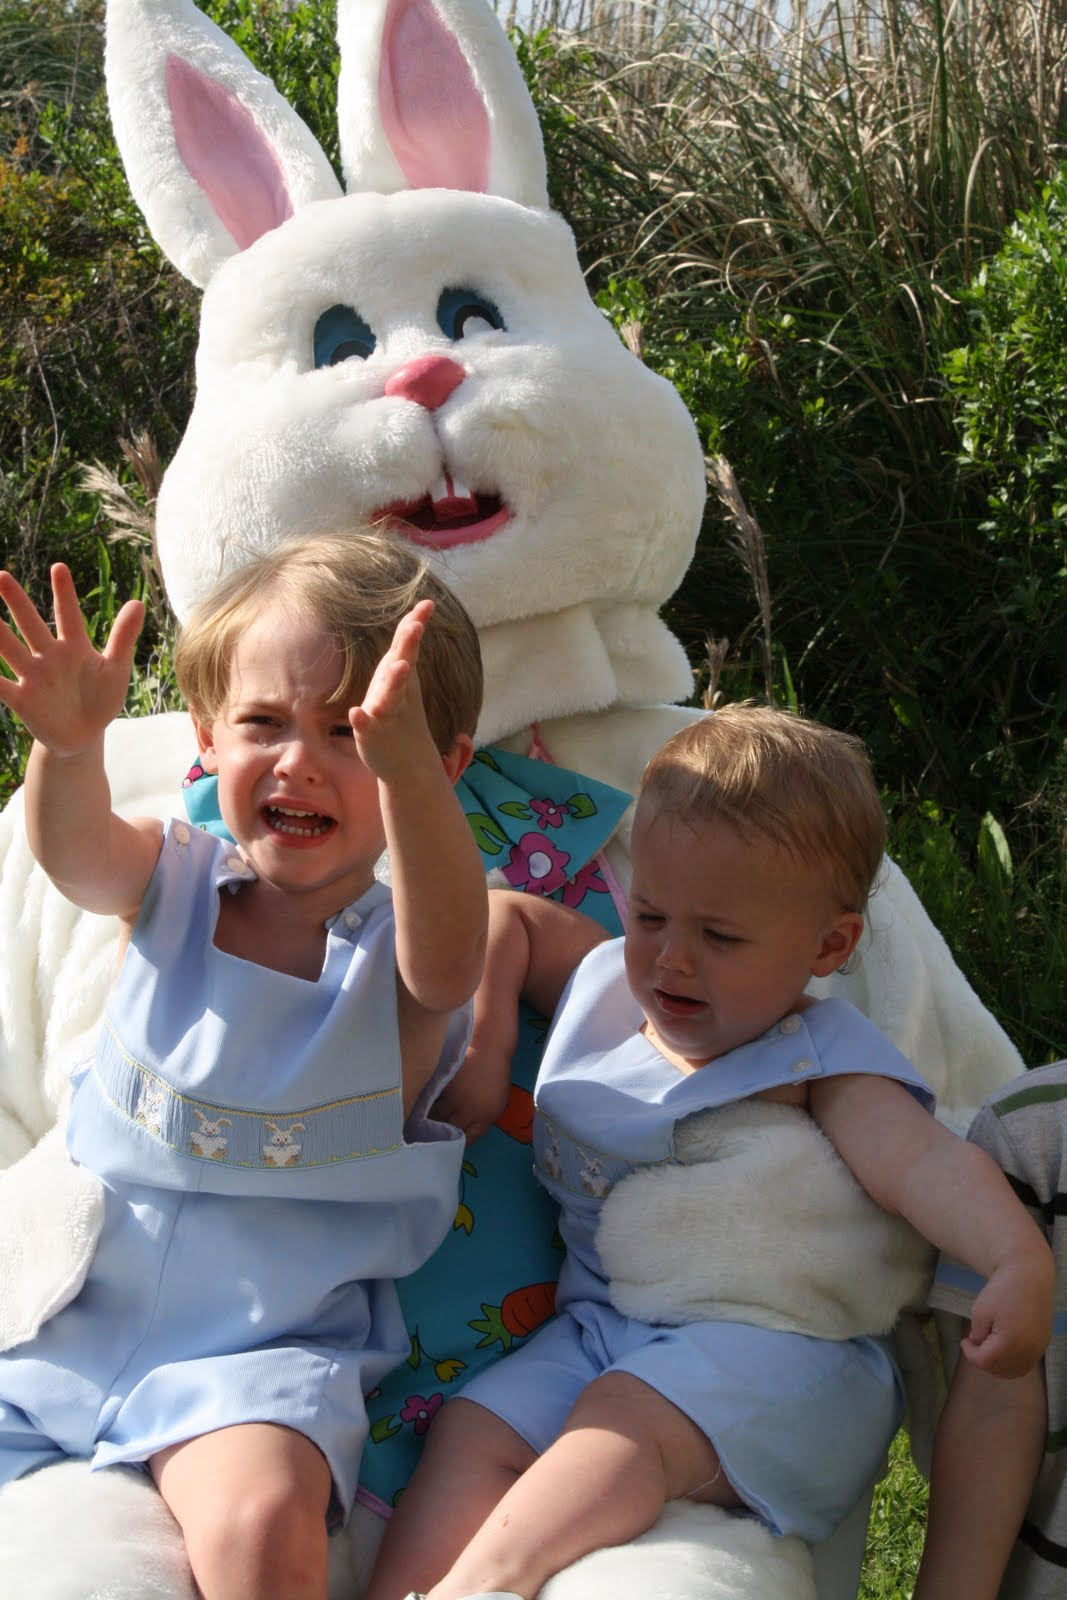 Scary Easter Bunny Photos Easter bunnies are scary